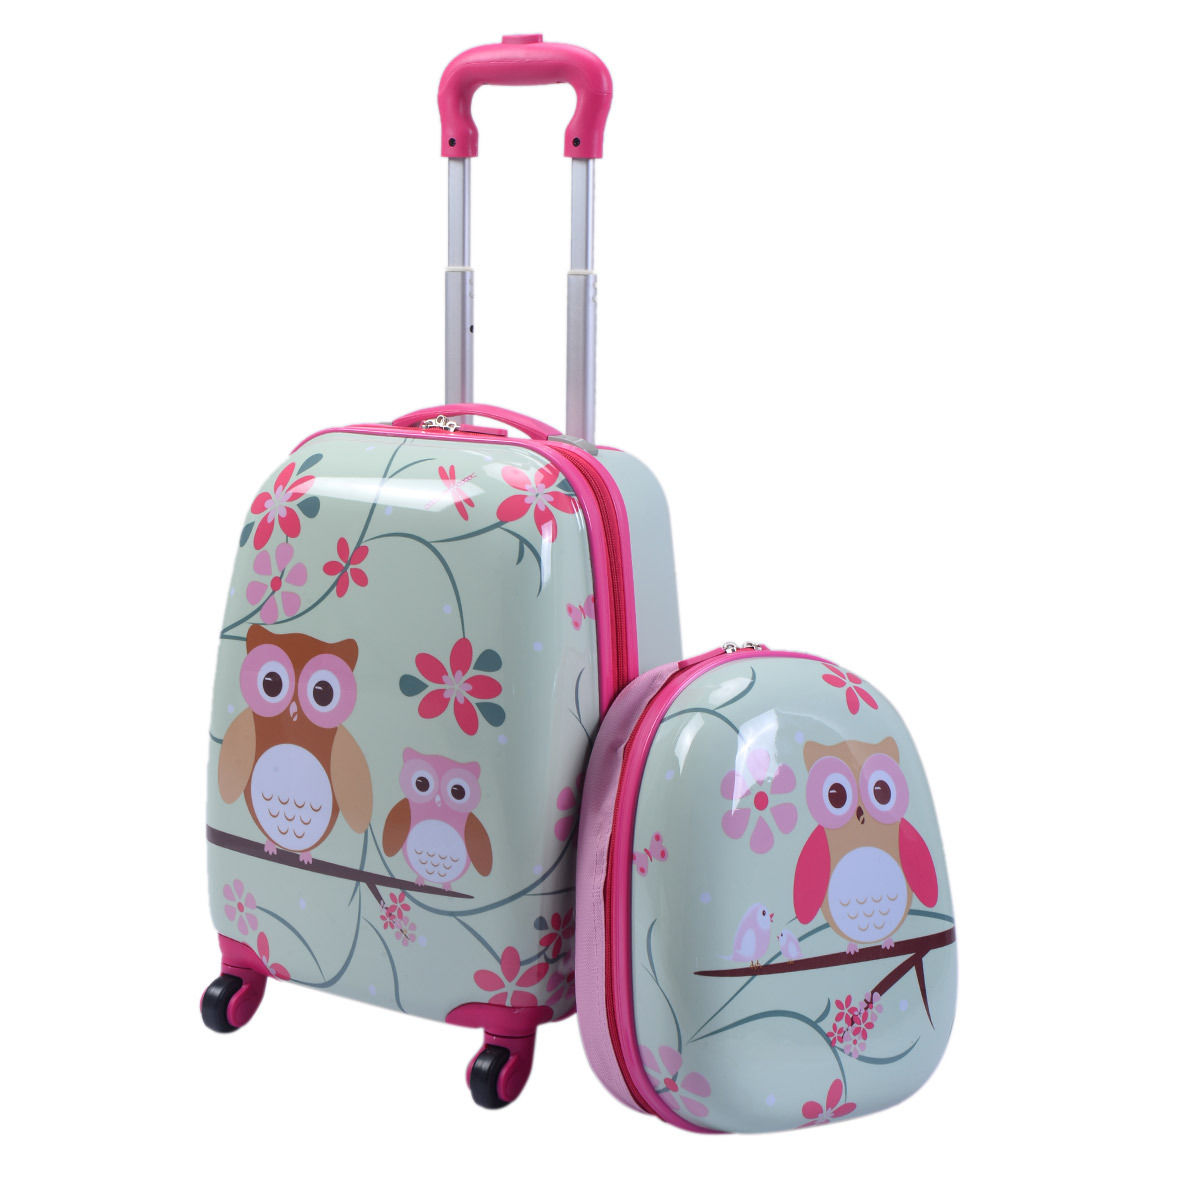 Costway 2Pc 12'' 16'' Kids Luggage Set Suitcase Backpack School Travel Trolley ABS by Costway